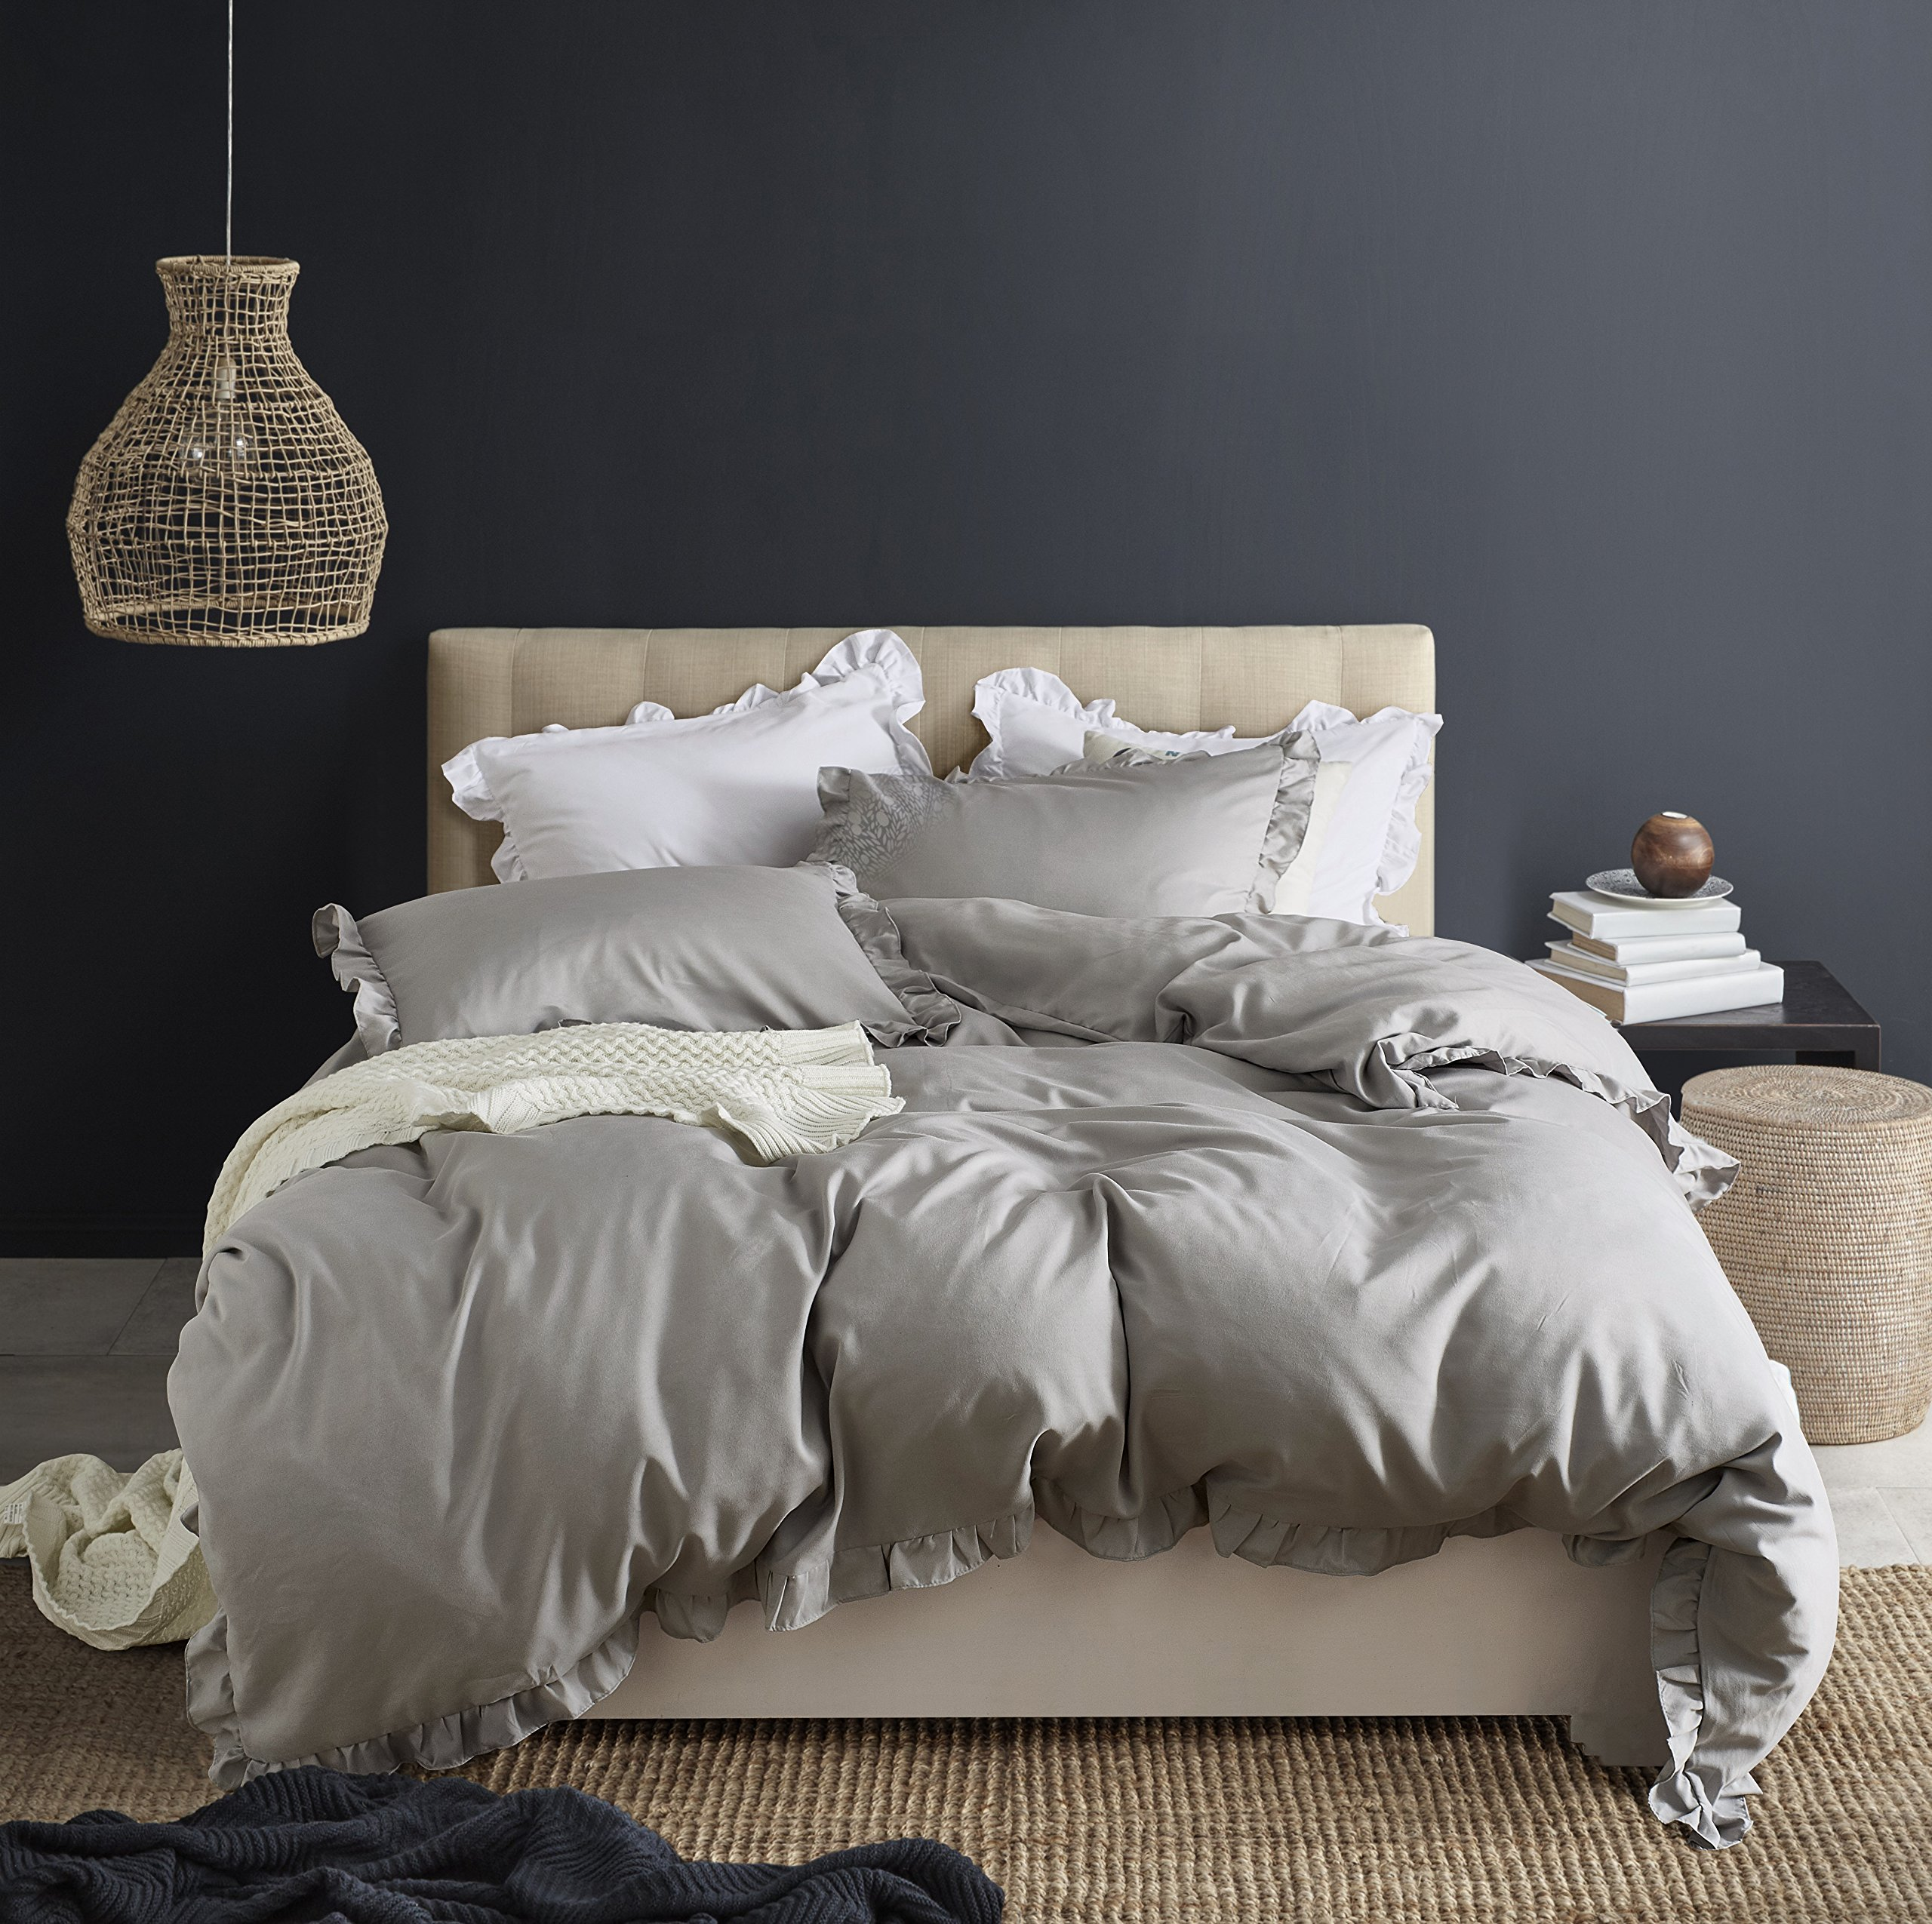 WAFTING Lightweight Duvet Cover Set with Zipper Closure Queen 90''x90'',3 Pieces Solid Color Light Grey Bedding Set with 2 Pillow Shams,Exquisite Ruffles Design,Best Bedding Gifts - without Comforter